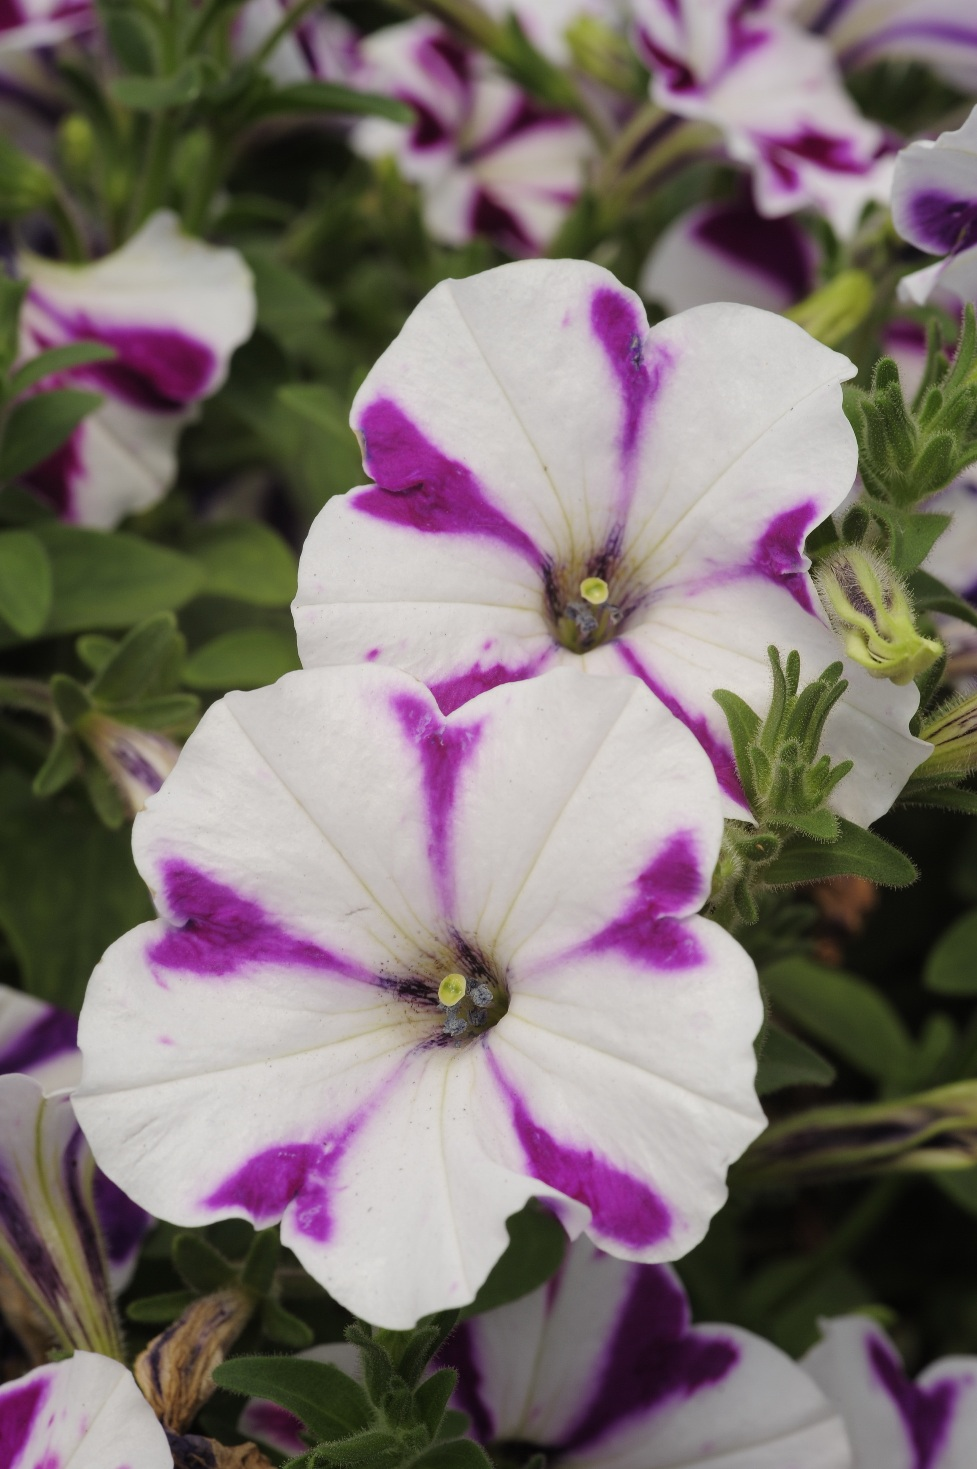 Ampel petunia is one of the popular types of garden flowers 37